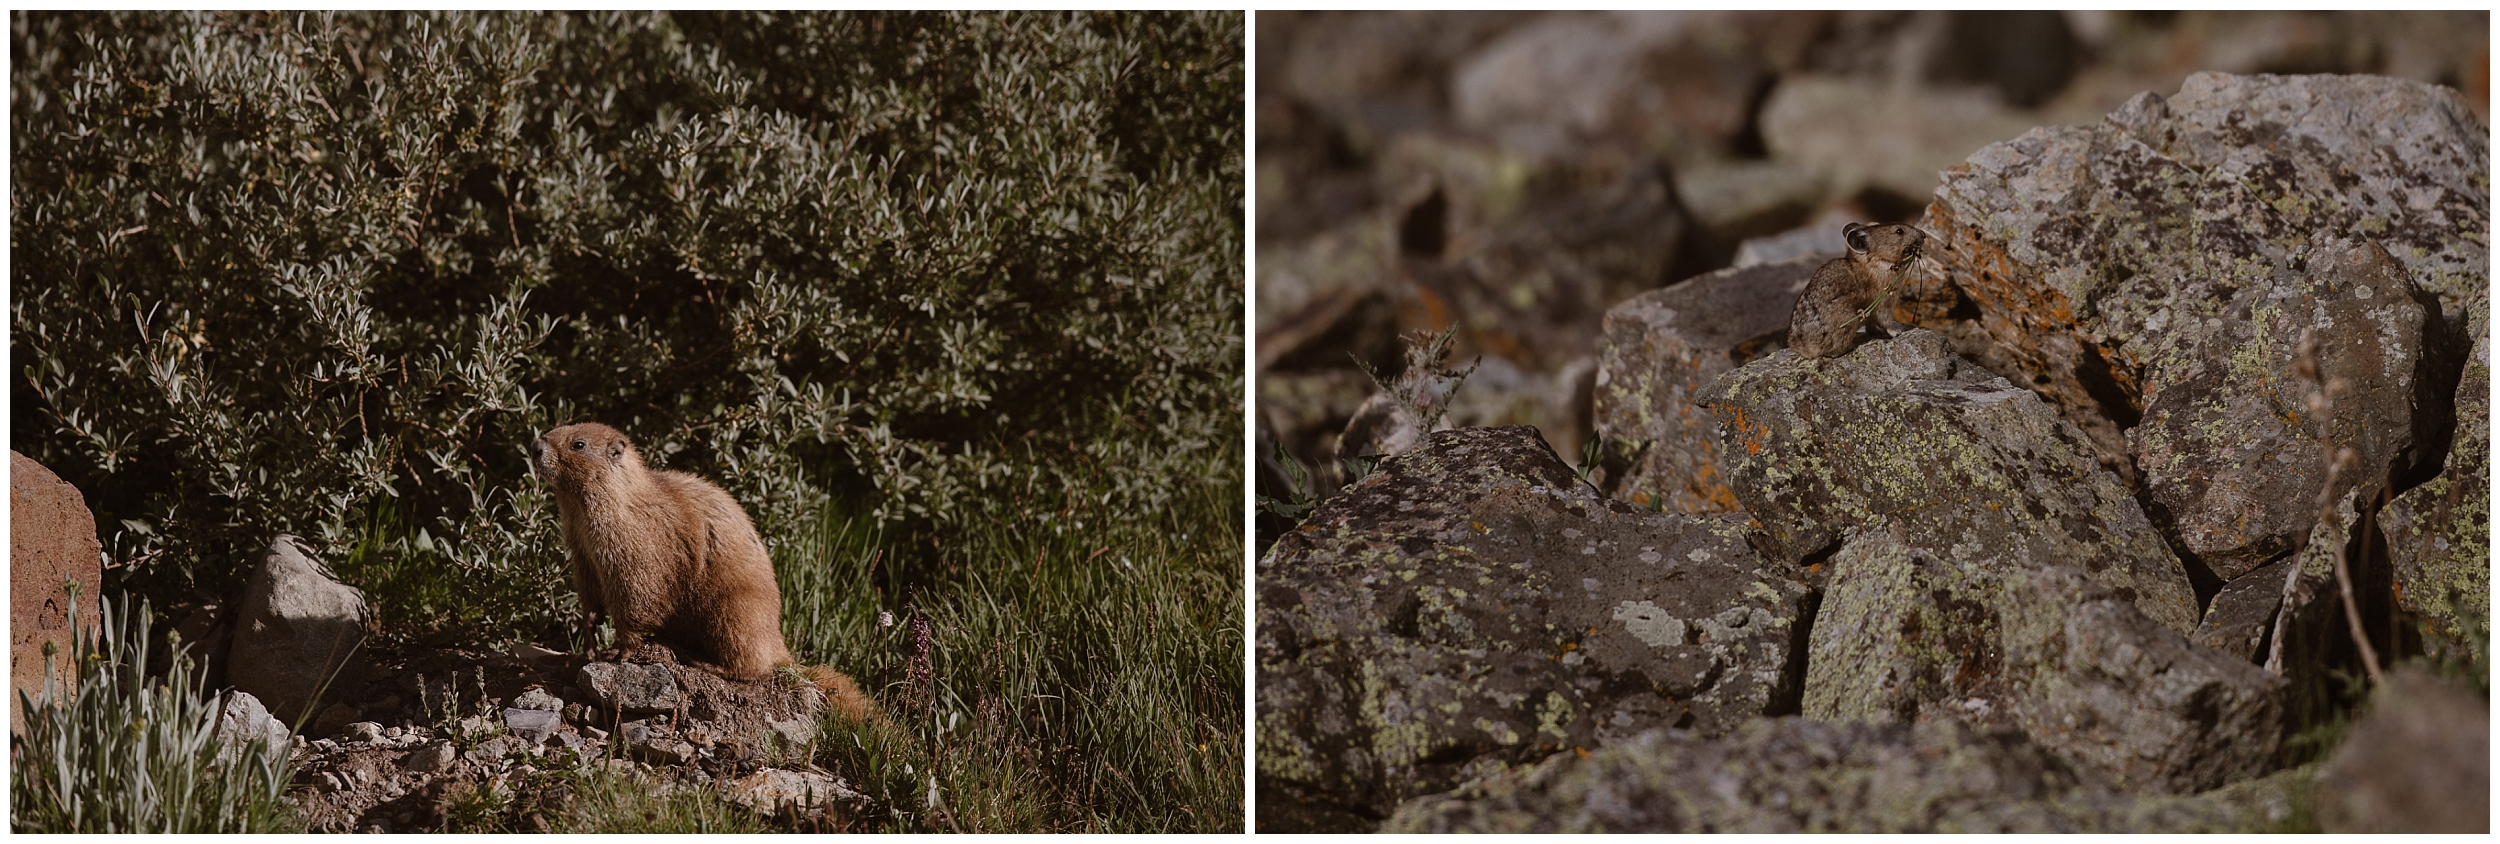 In these side-by-side elopement photos, two small, furry creatures are shown close-up. These little rodents were adorable additions to Katie and Logan's off road, 4x4 wedding, which was one of the best elopement ideas.